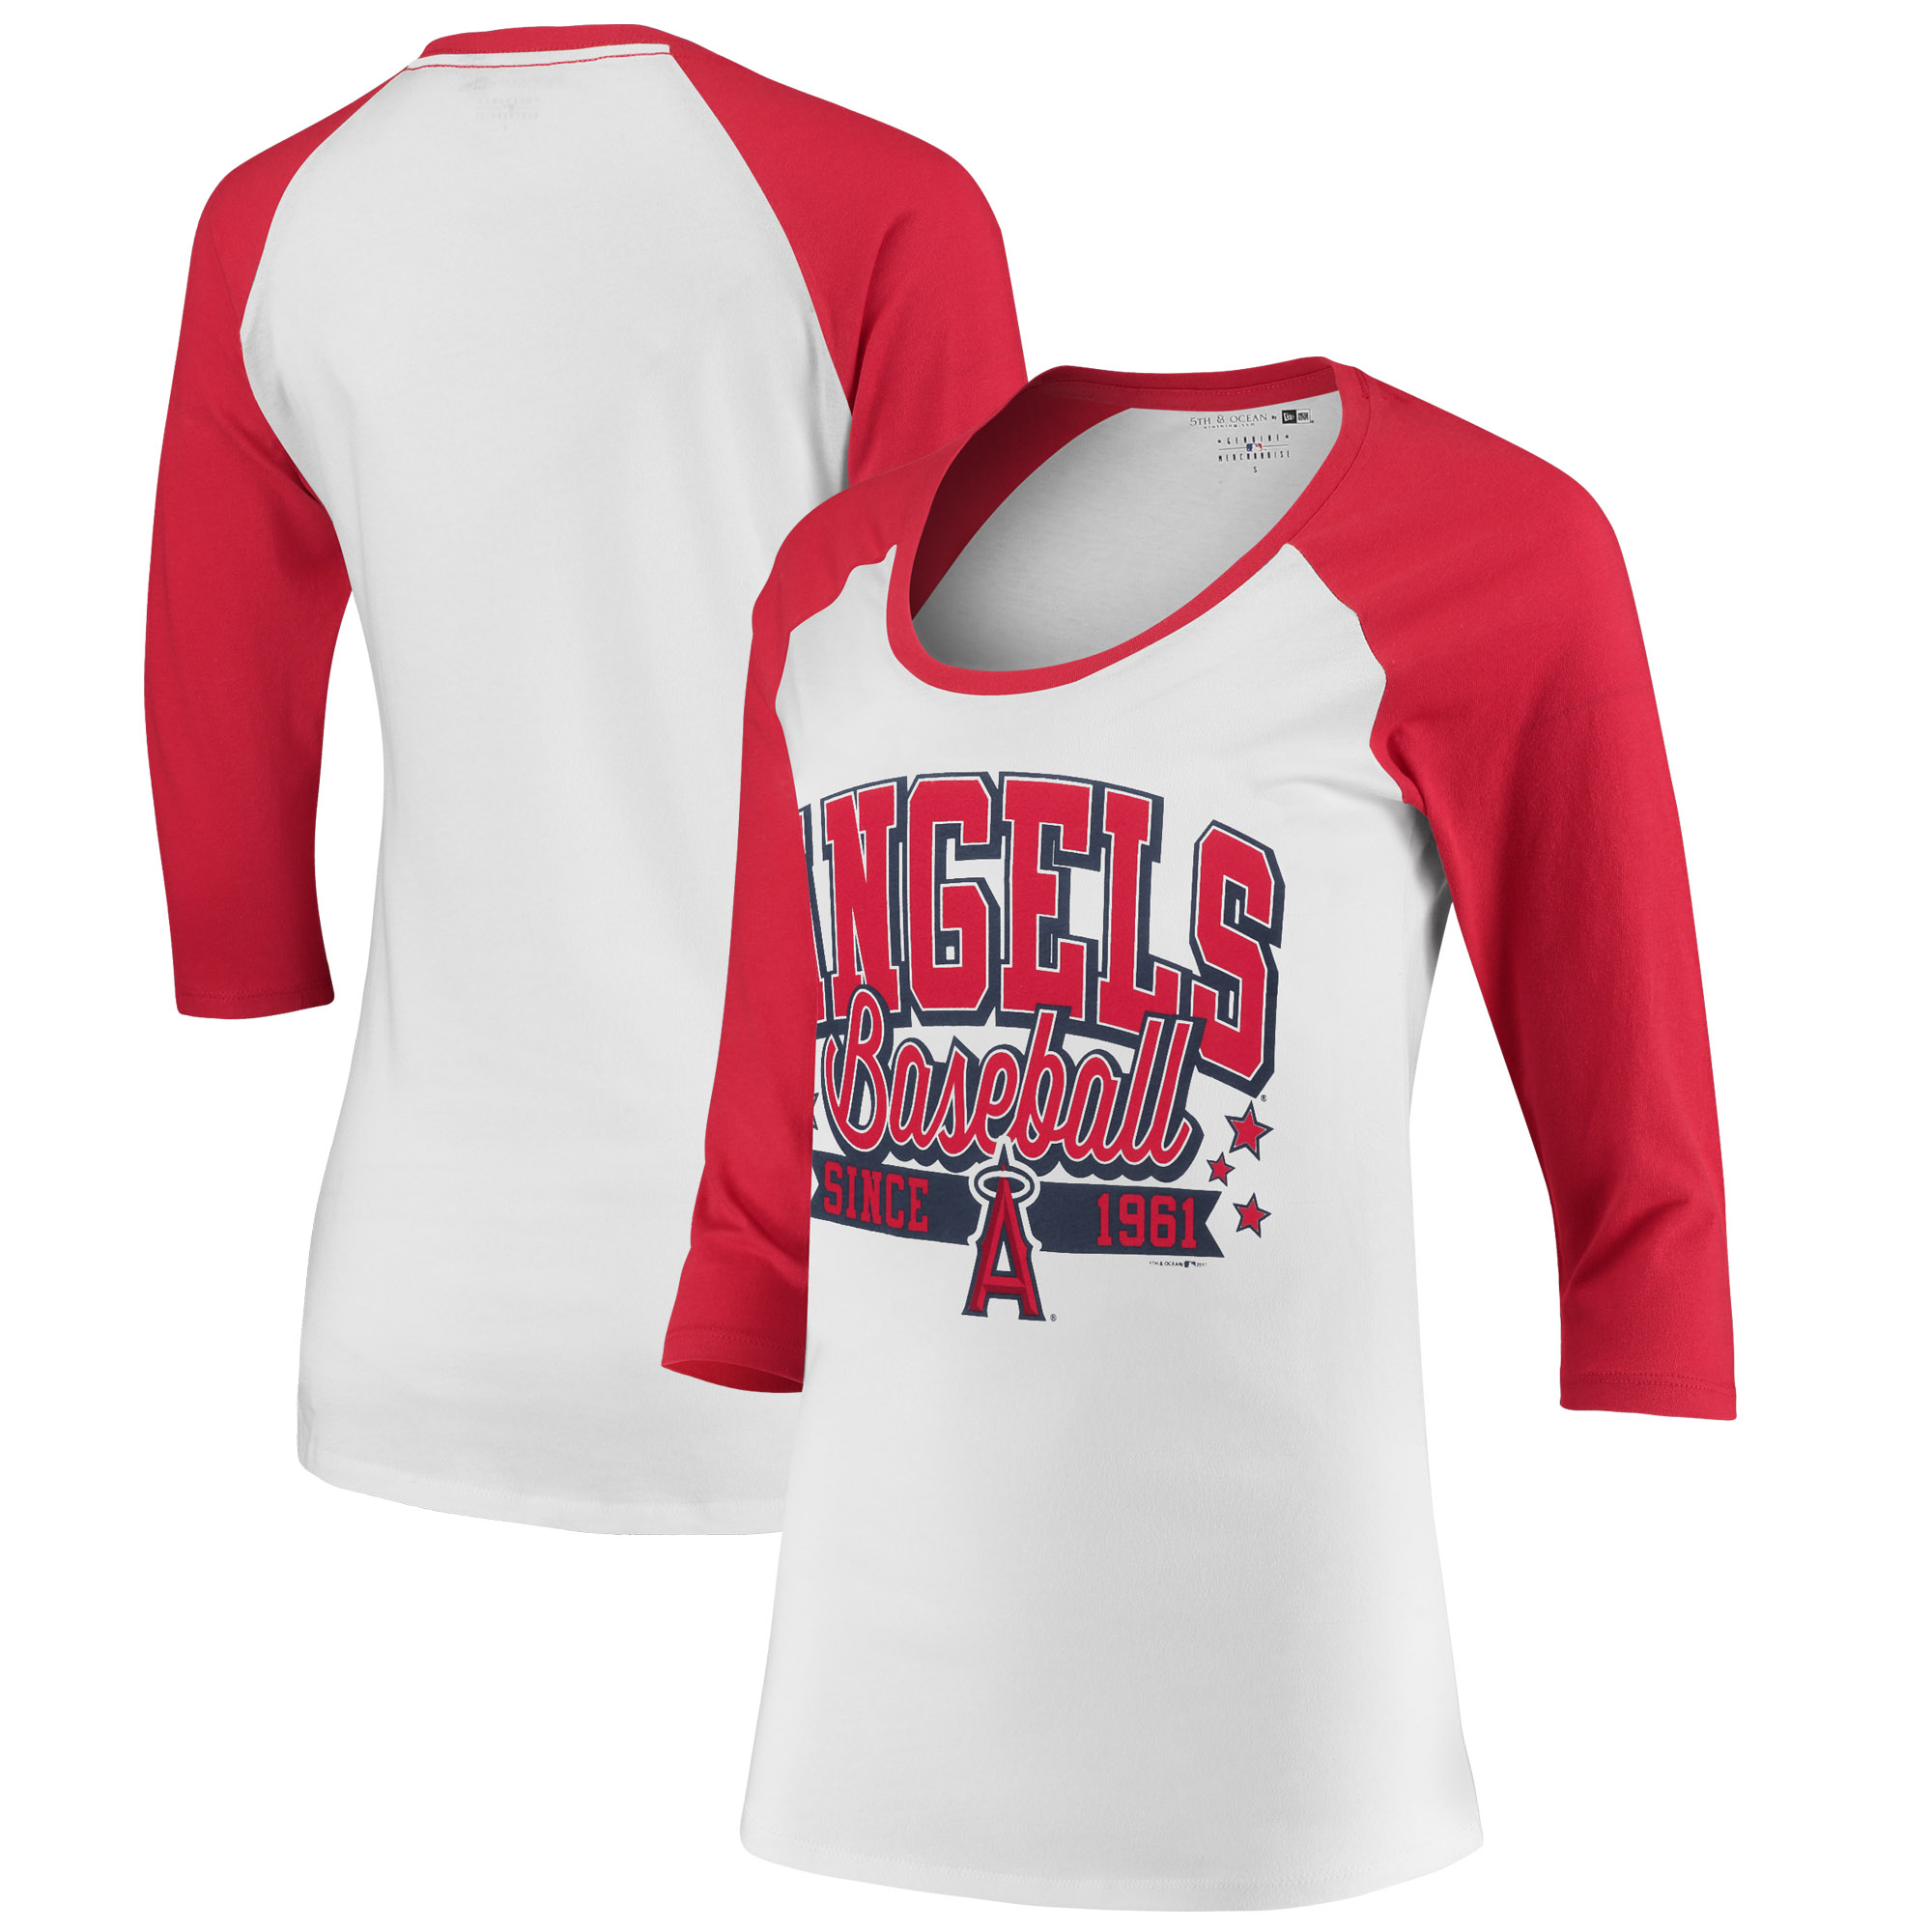 Los Angeles Angels 5th & Ocean by New Era Women's Team Banner 3/4-Sleeve Raglan T-Shirt - White/Red